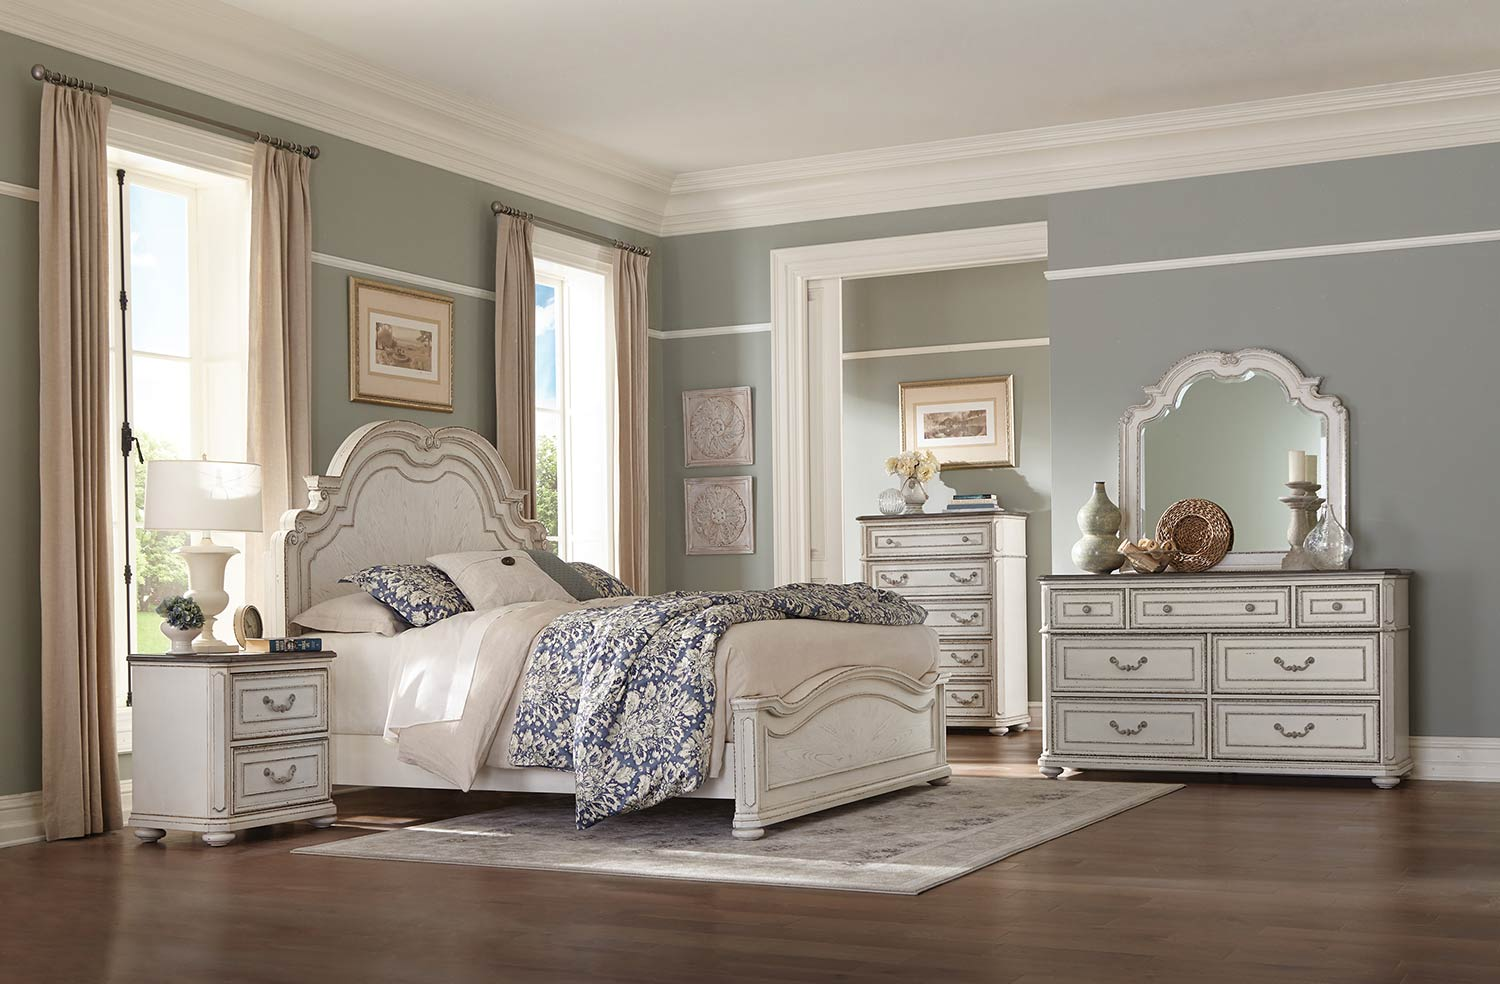 Homelegance Willowick Bedroom Set - Antique White